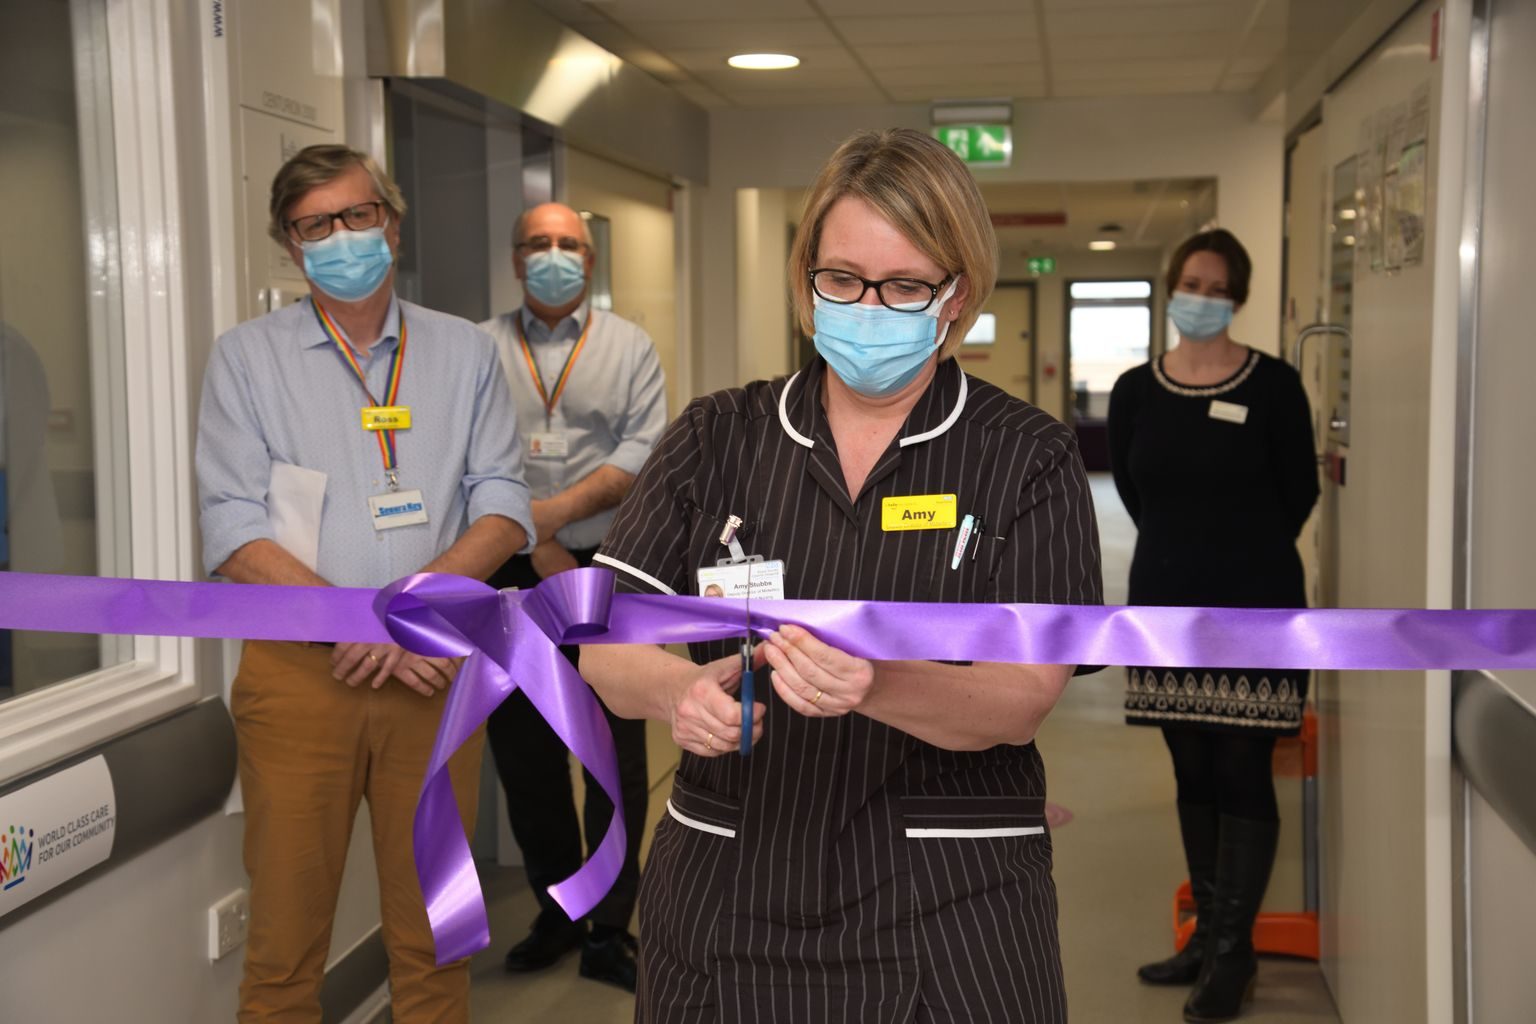 Refurbished special care baby unit at Guildford's Royal Surrey means parents can stay close 24/7